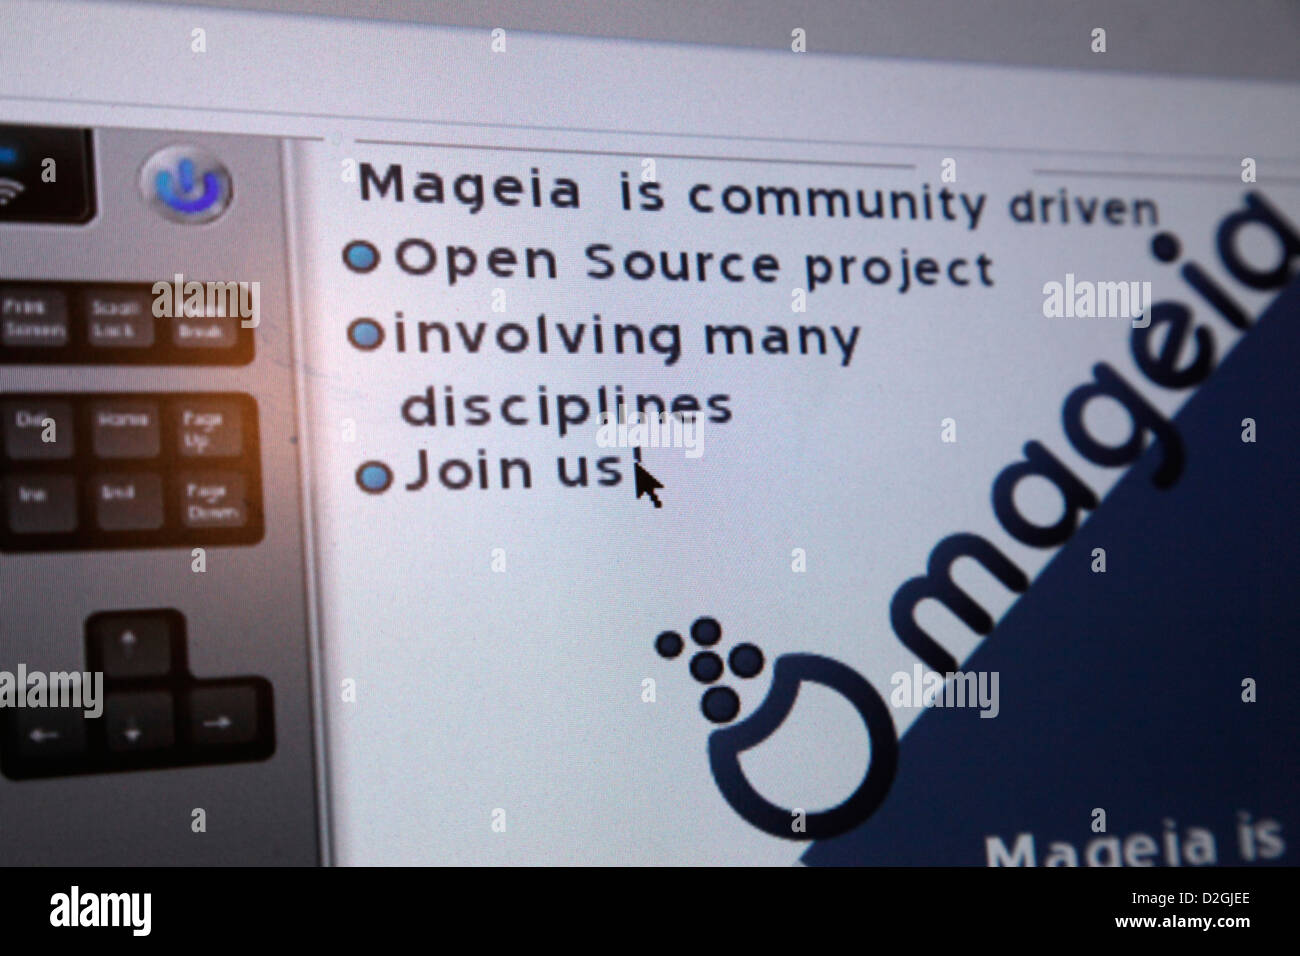 Installing the popular and contributor driven free open source Linux Mageia 2 operating system on a PC - Stock Image